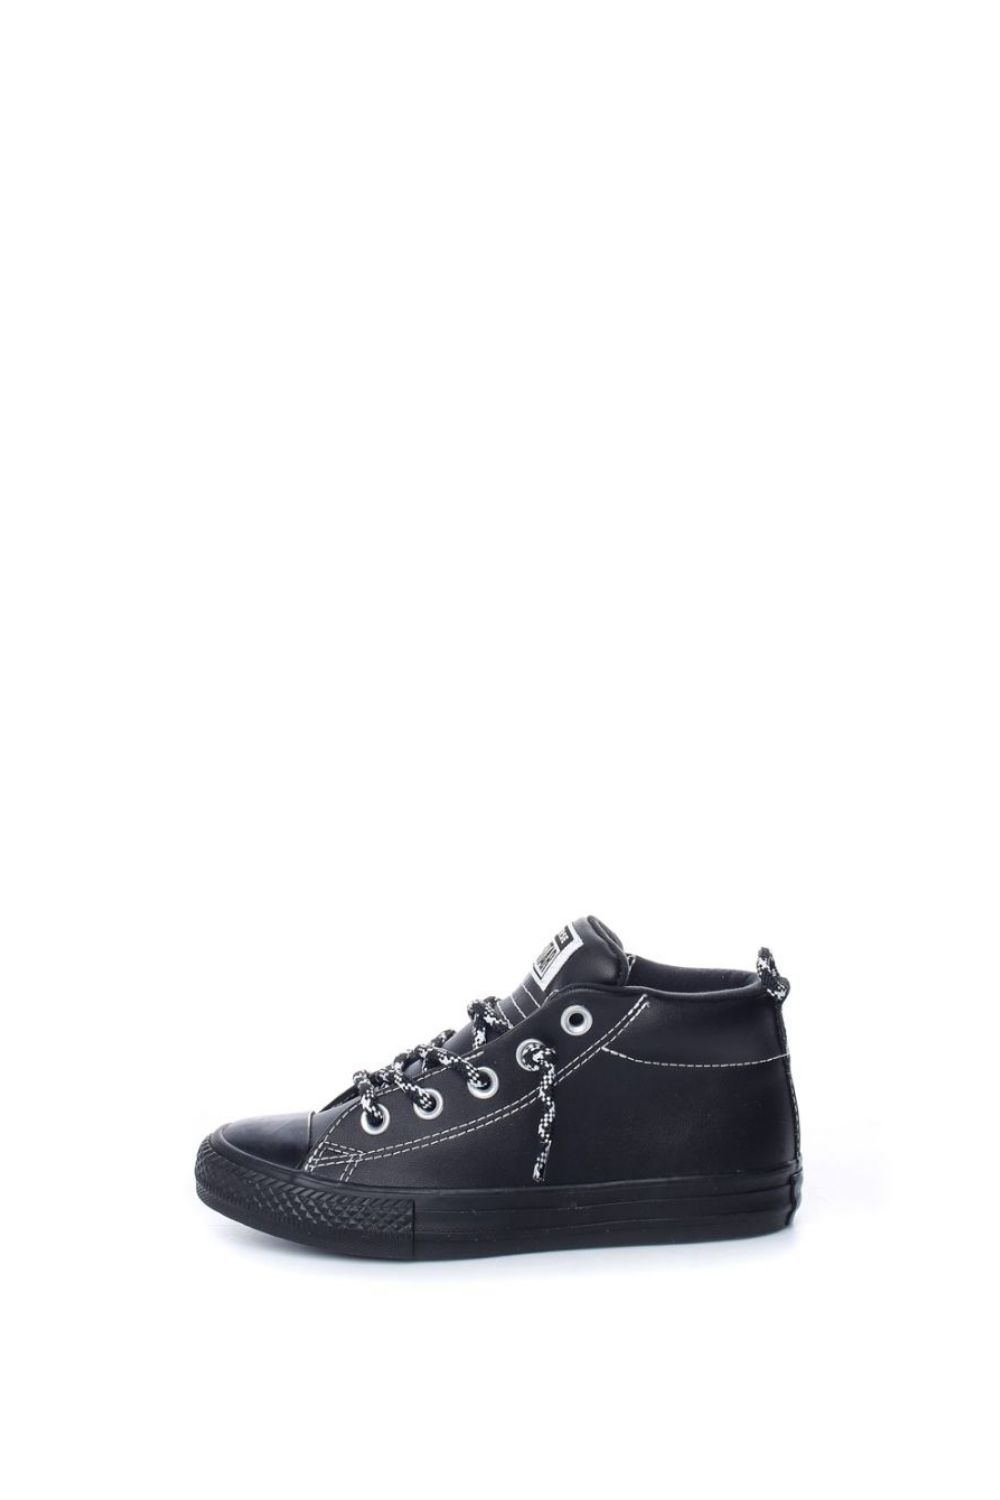 -40% Collective Online CONVERSE – Παιδικά μποτάκια CHUCK TAYLOR ALL STAR  STREET CONVERSE μαύρα 01be4900b5e